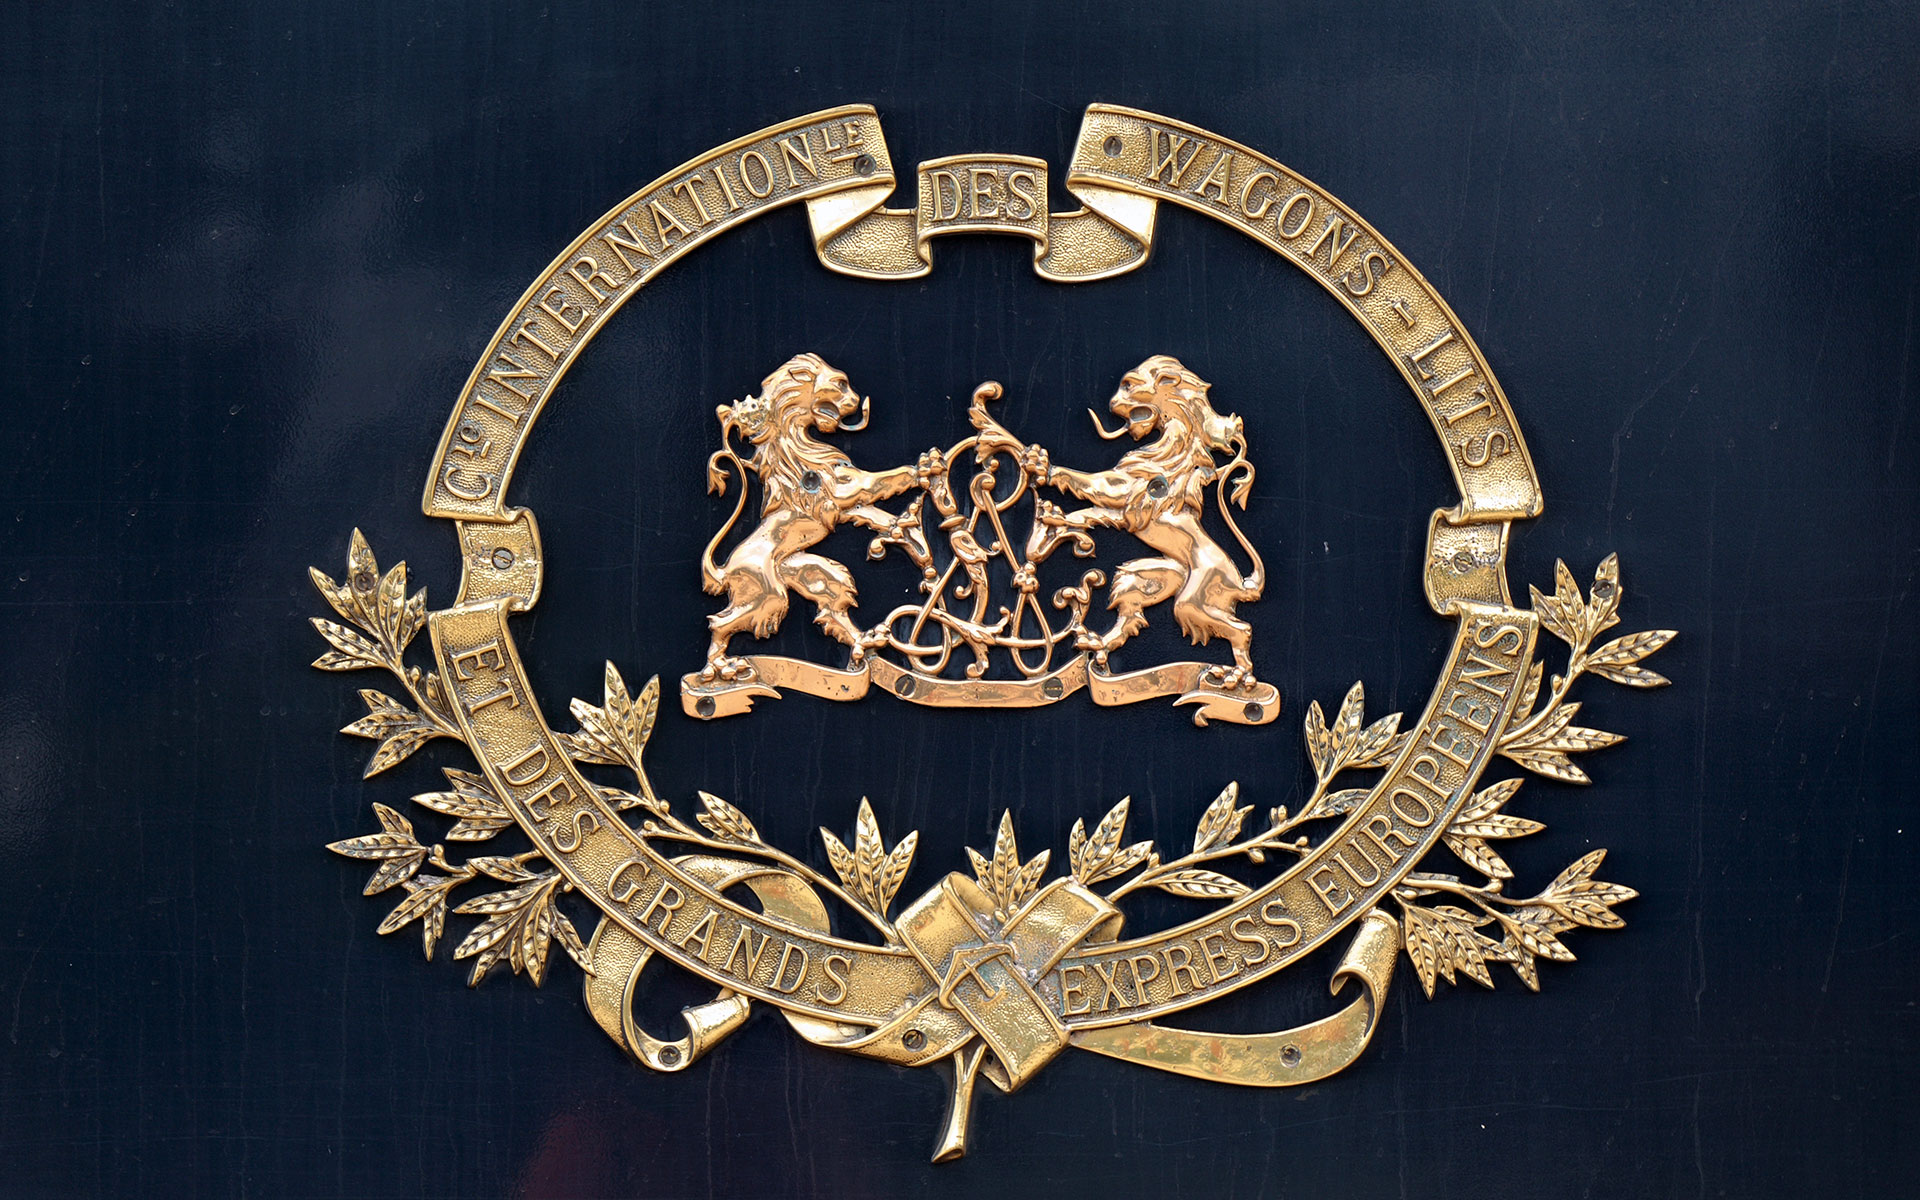 Crest of the Wagons-Lits company that used to run the Orient Express (photo © Presiyan Panayotov).